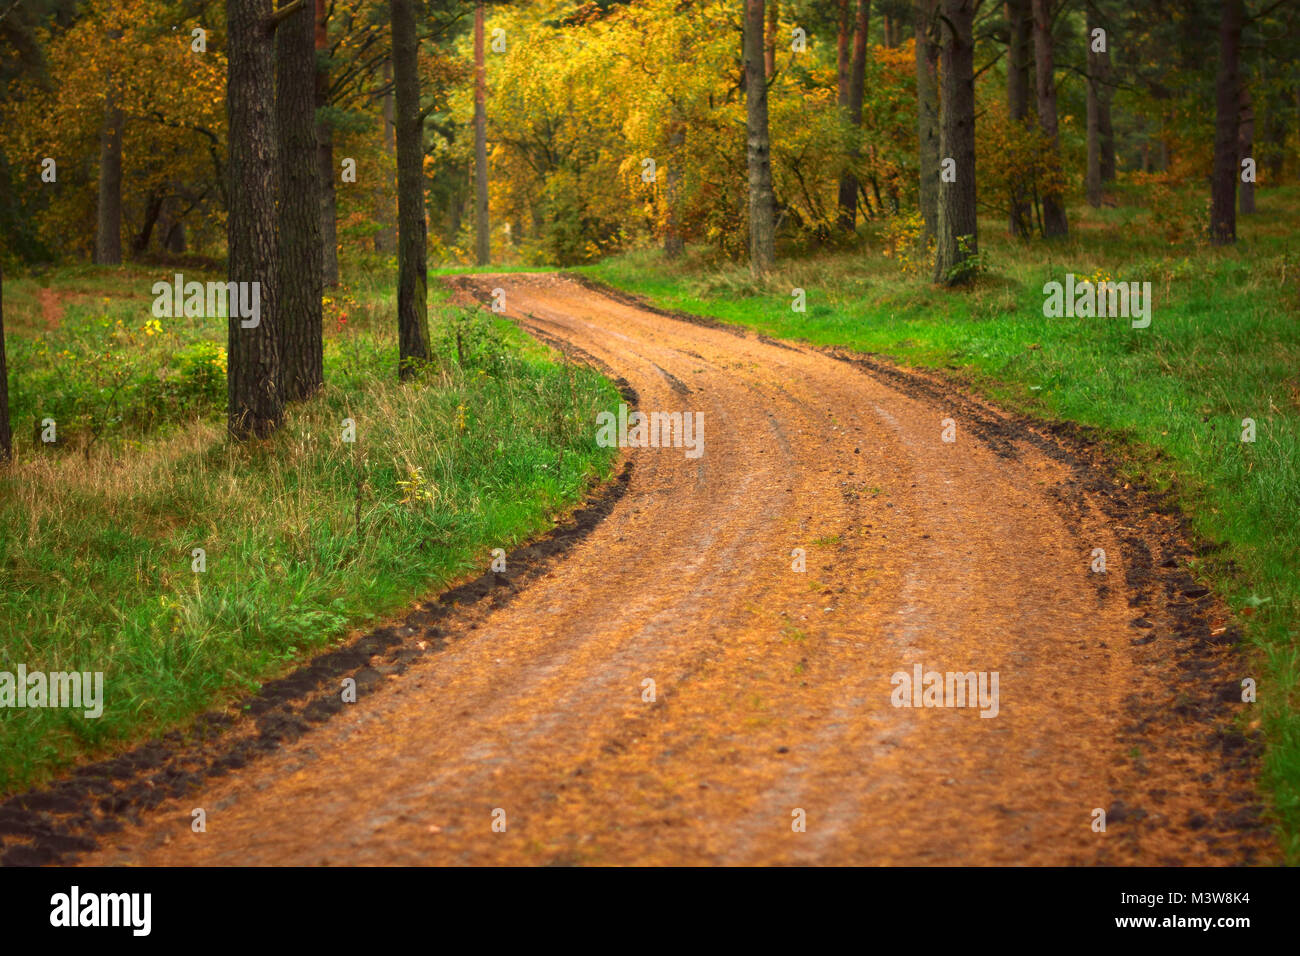 Pathway at Swedish countryside - Stock Image